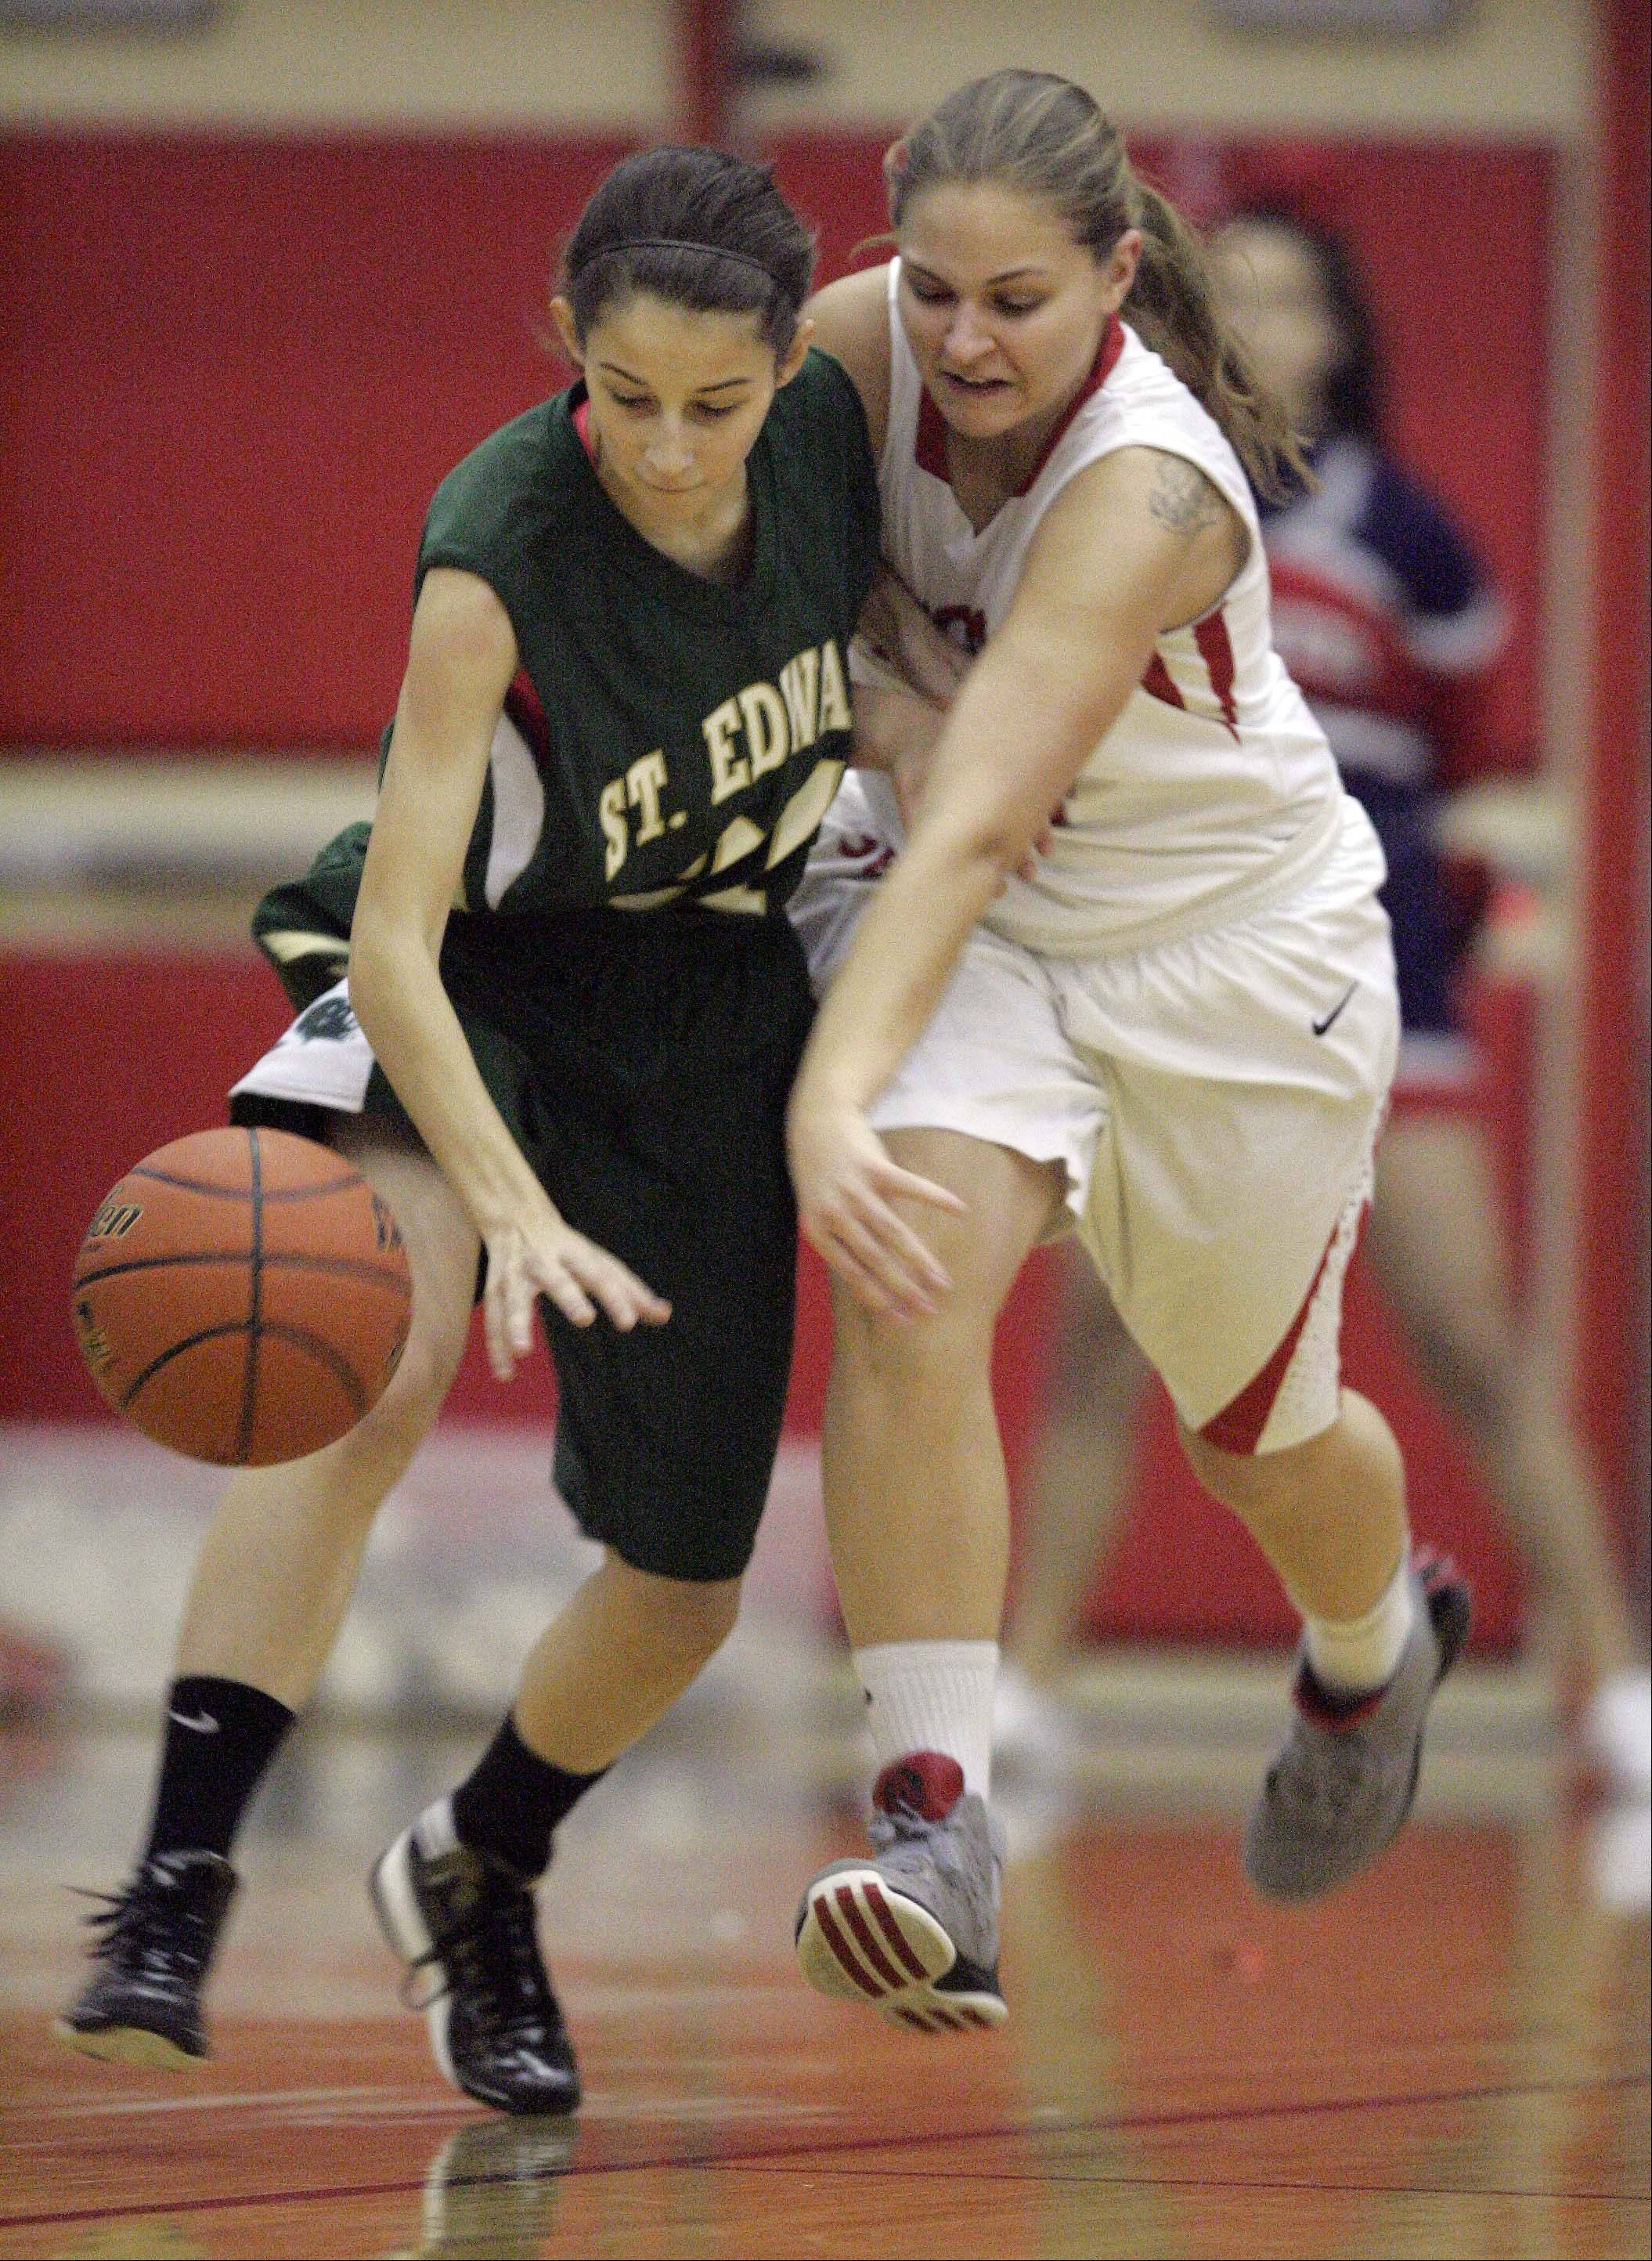 St. Edward's Chelsea Gnan defends against South Elgin's Amanda Behles Saturday at South Elgin.